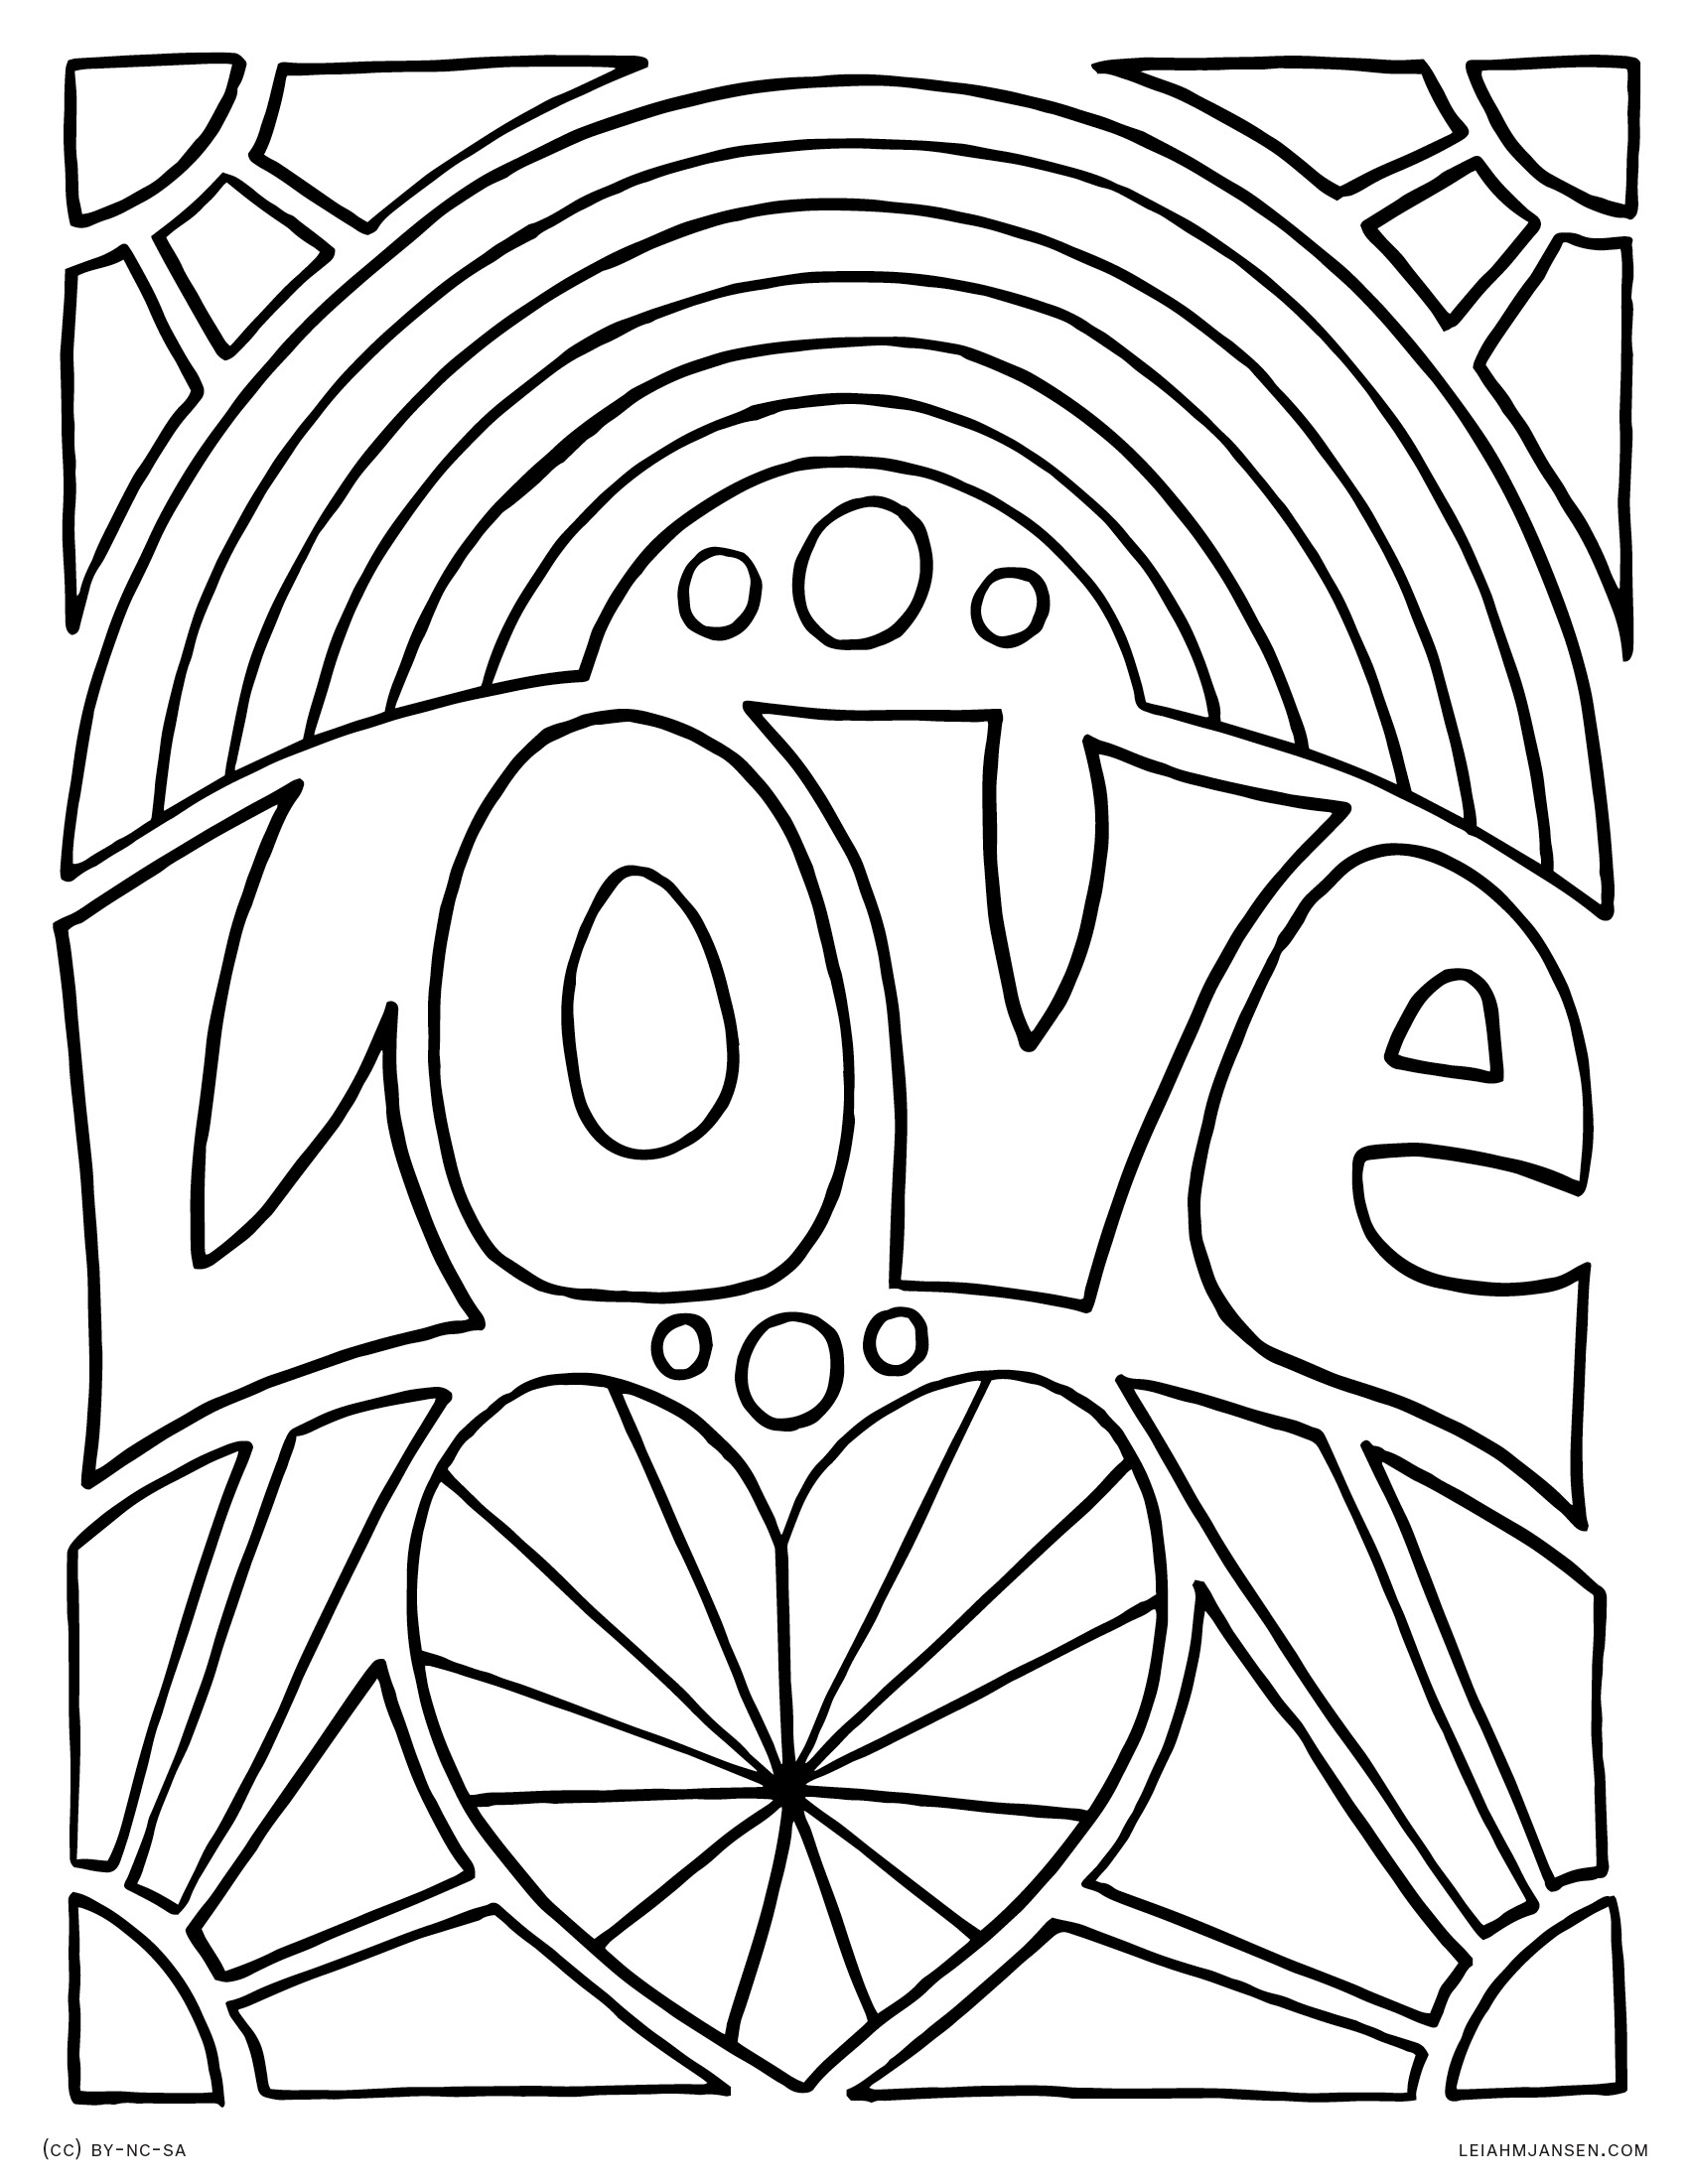 This is an image of Vibrant adult rainbow coloring pages